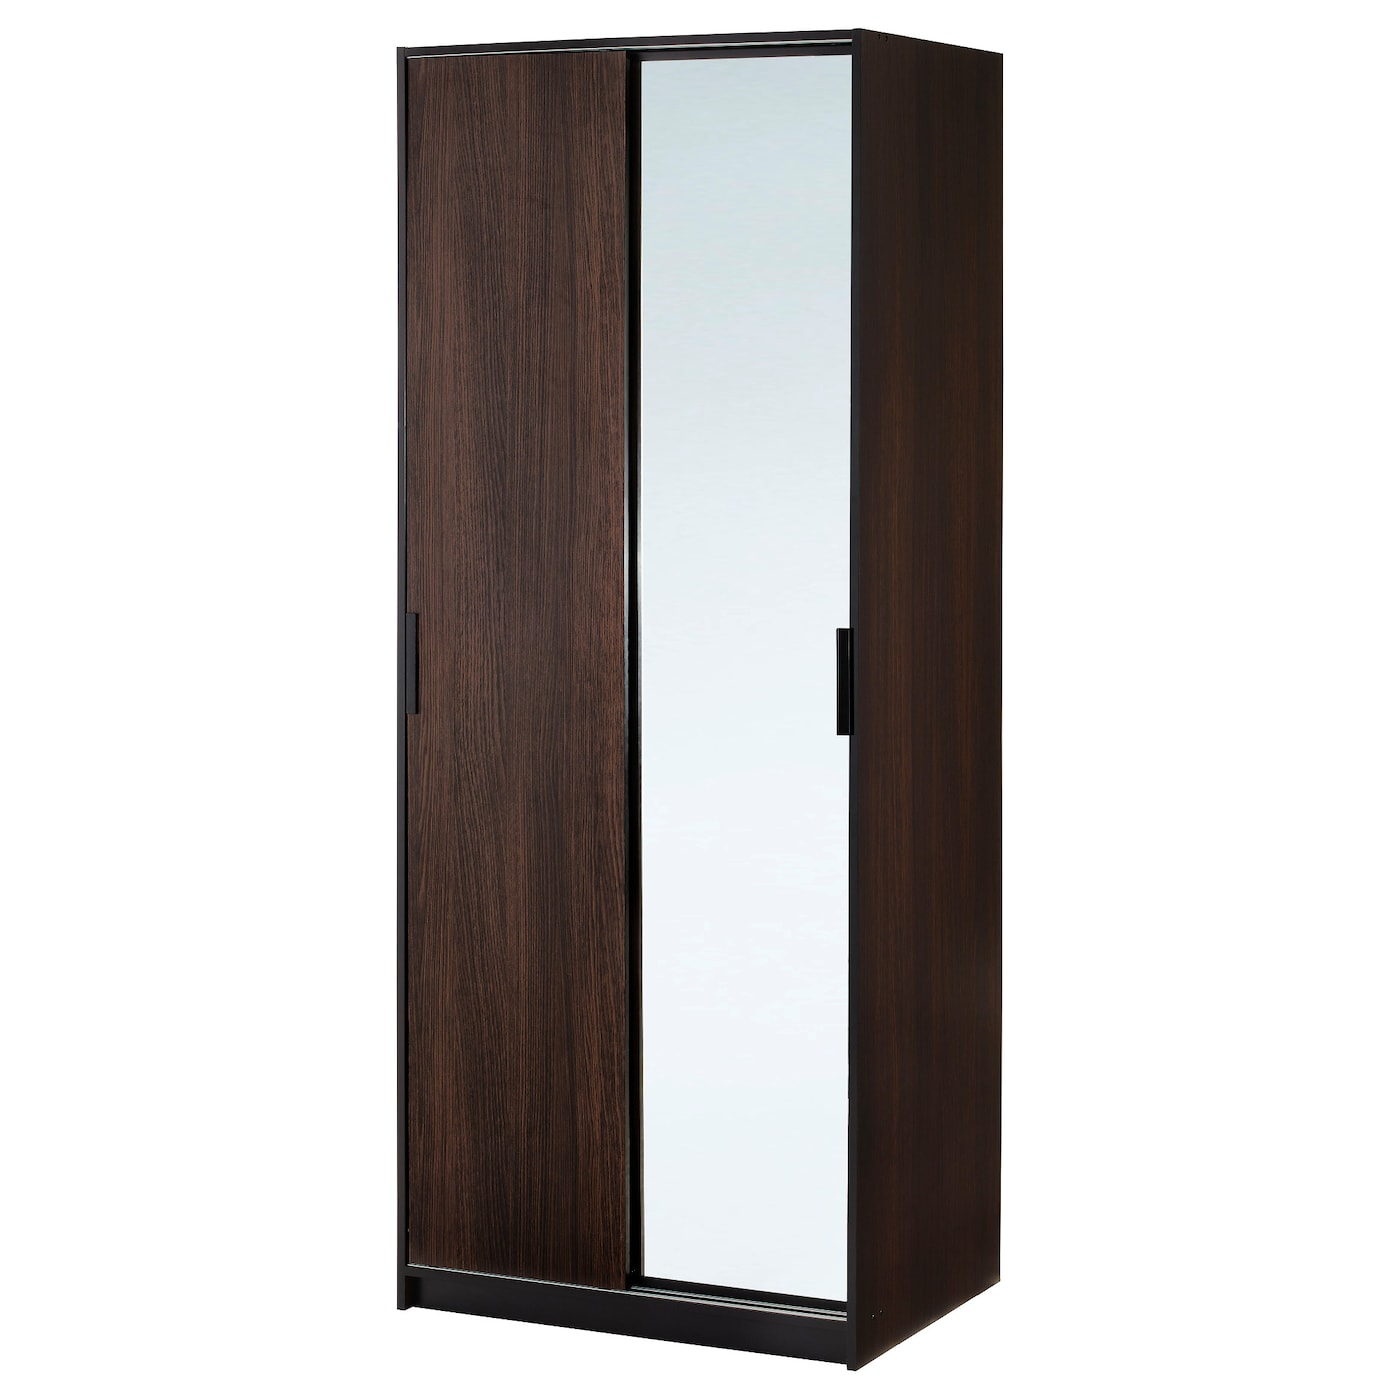 Ikea Schreibtisch Jonas Neupreis ~ IKEA TRYSIL wardrobe You save space with a mirror door, because you